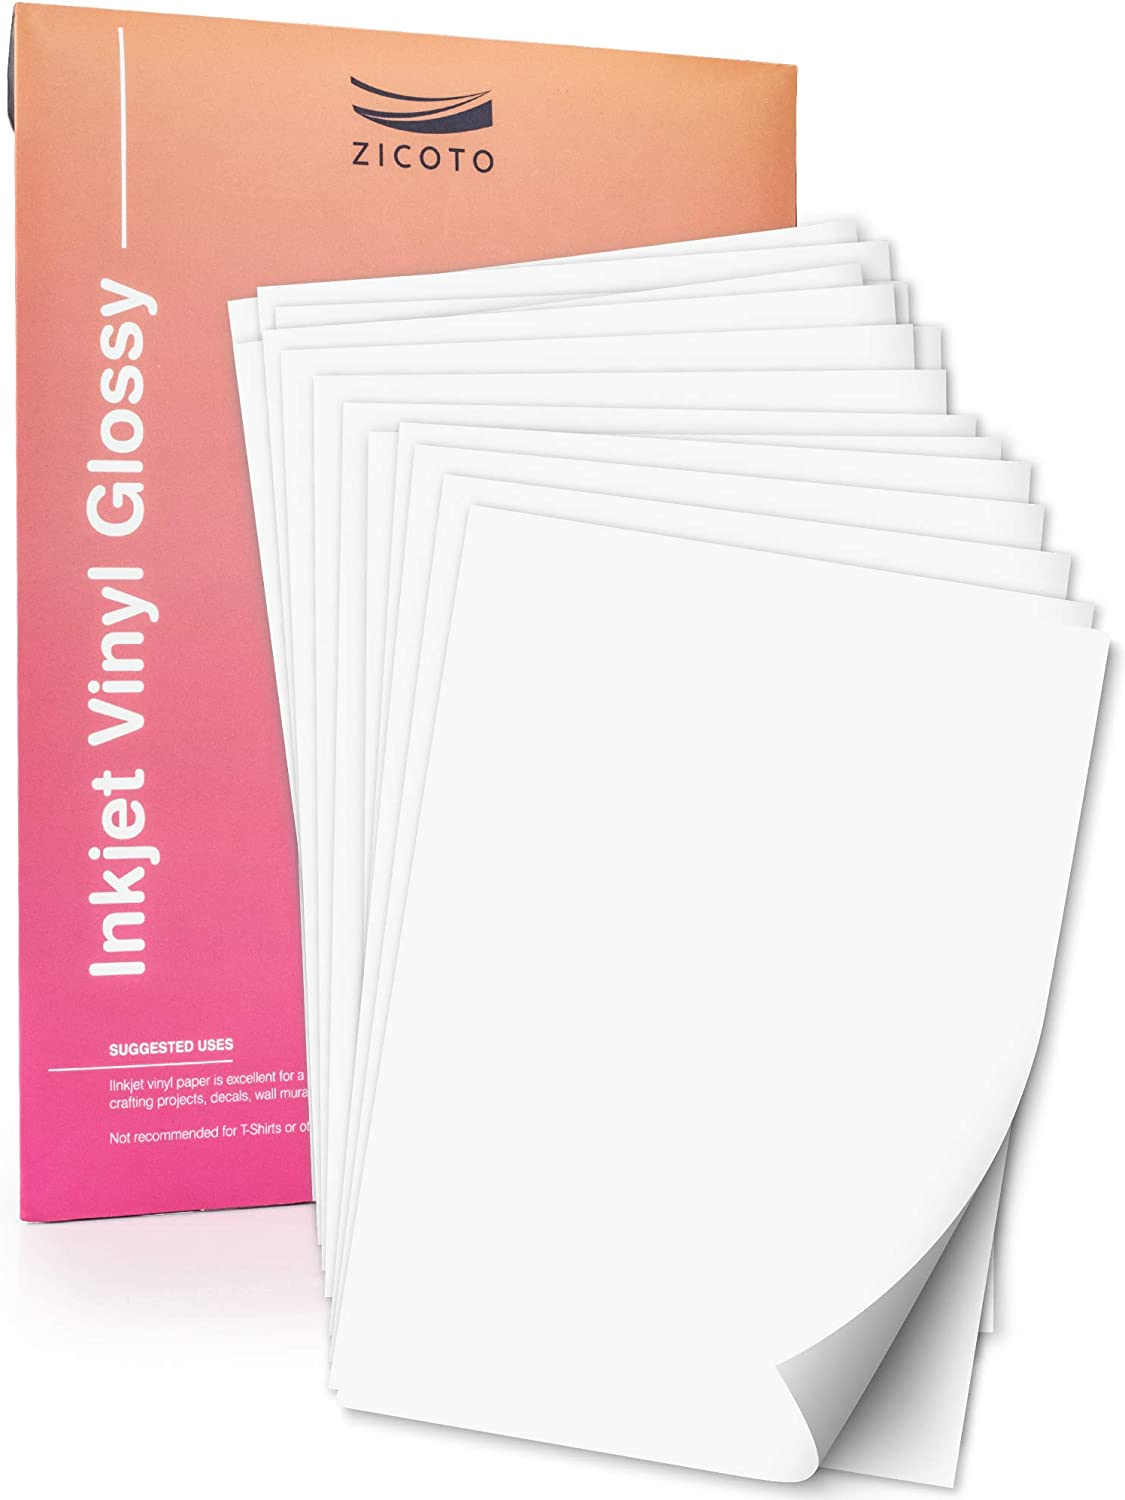 Premium Printable Vinyl Sticker Paper for Your Inkjet Printer - 15 Glossy White Waterproof Decal Paper Sheets - Dries Quickly and Holds Ink Beautifully